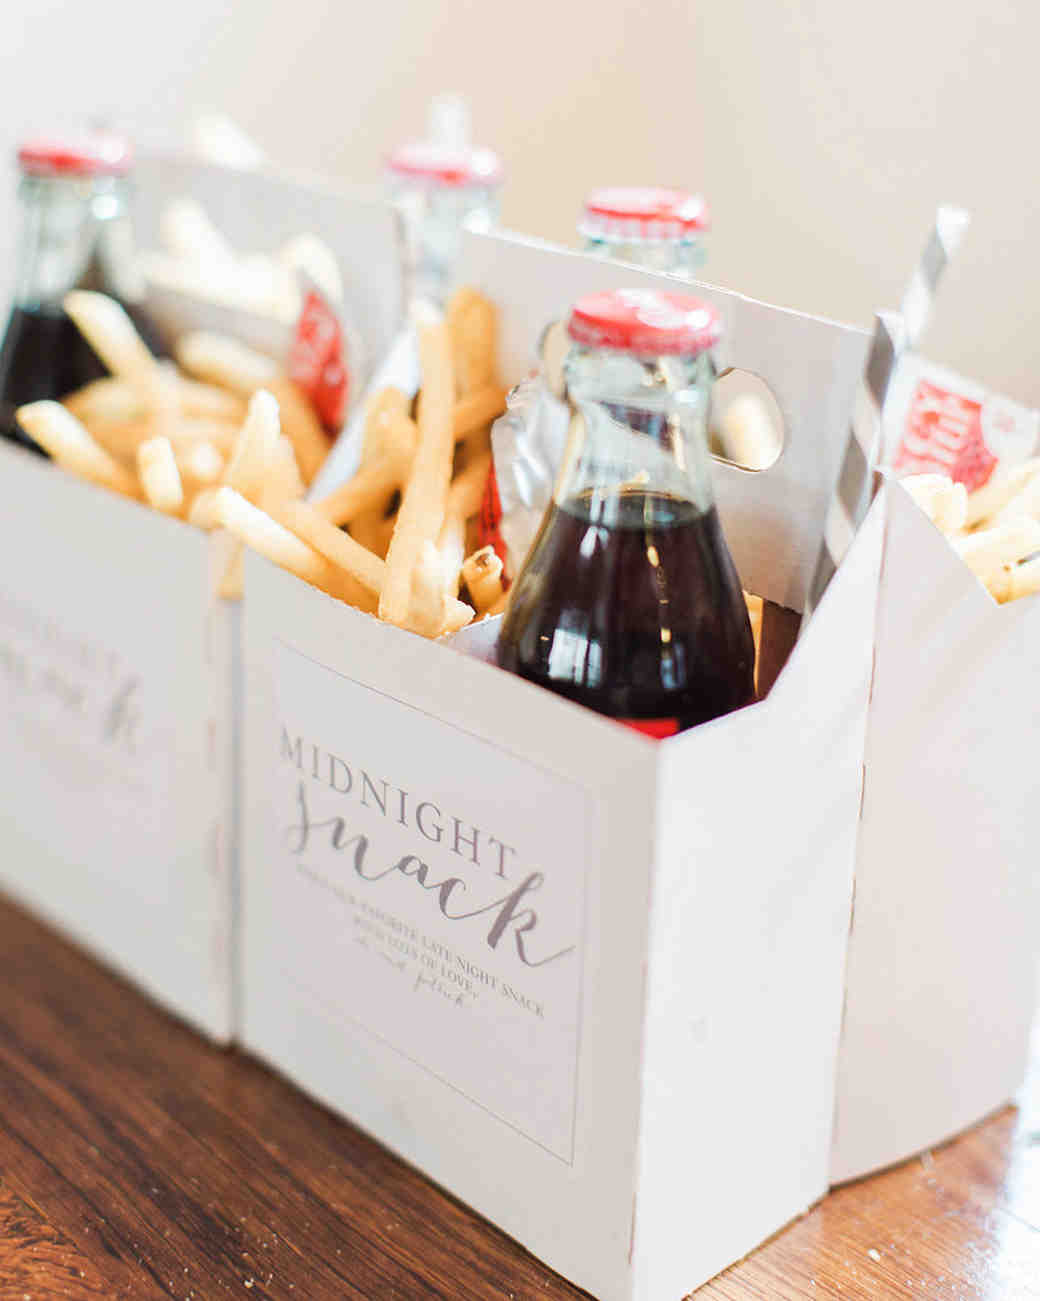 a bottle of Coke, fries, and burgers make the ultimate late night snack—and will help satisfy your guest's post drinking cravings